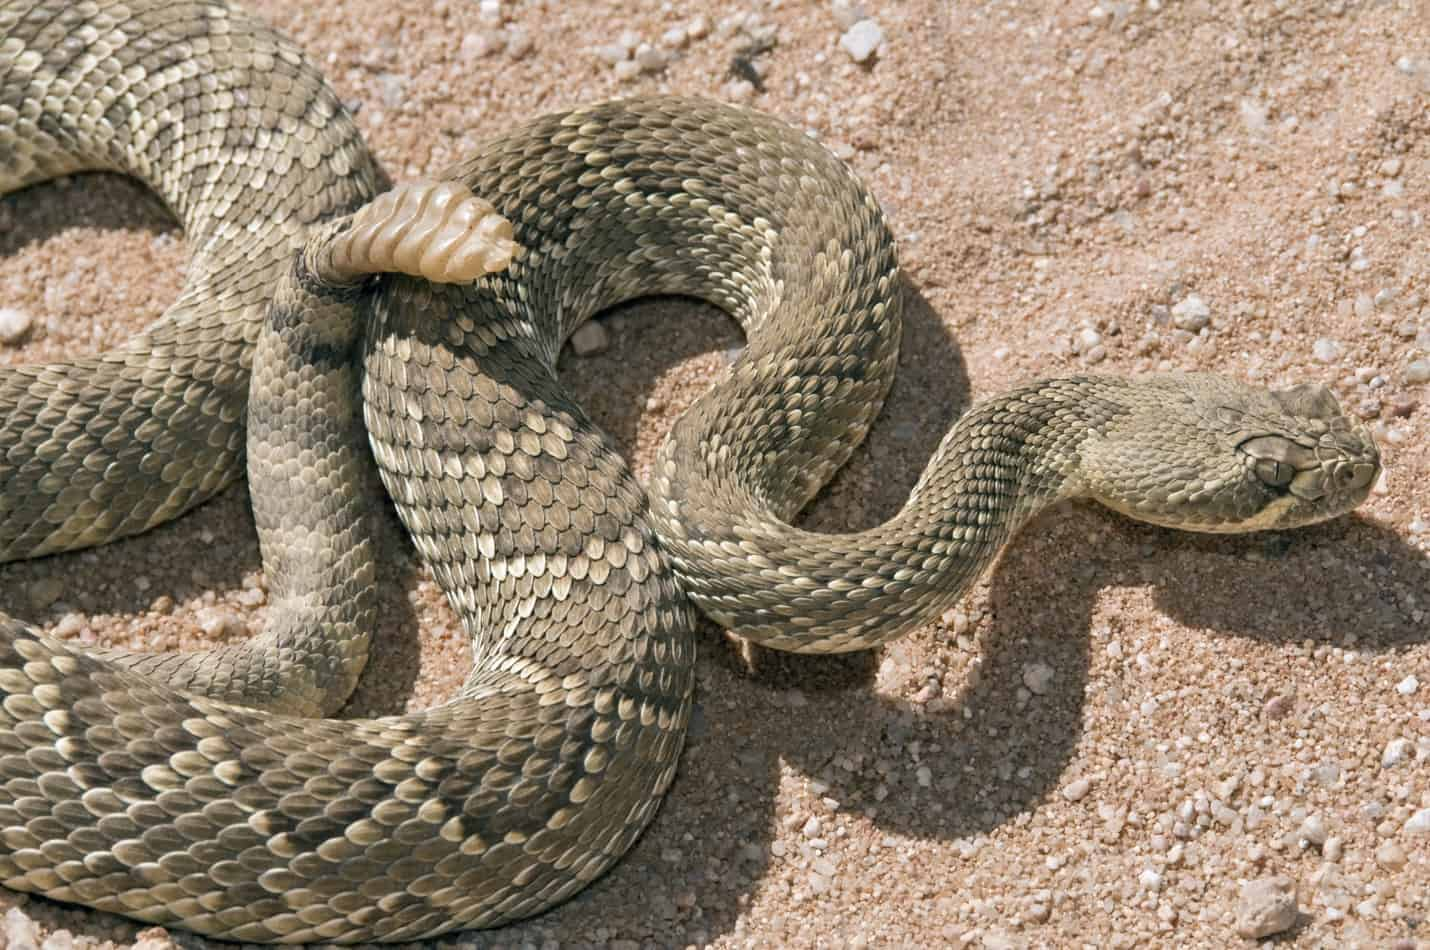 How Many Times a Year do Rattlesnakes Lay Eggs?